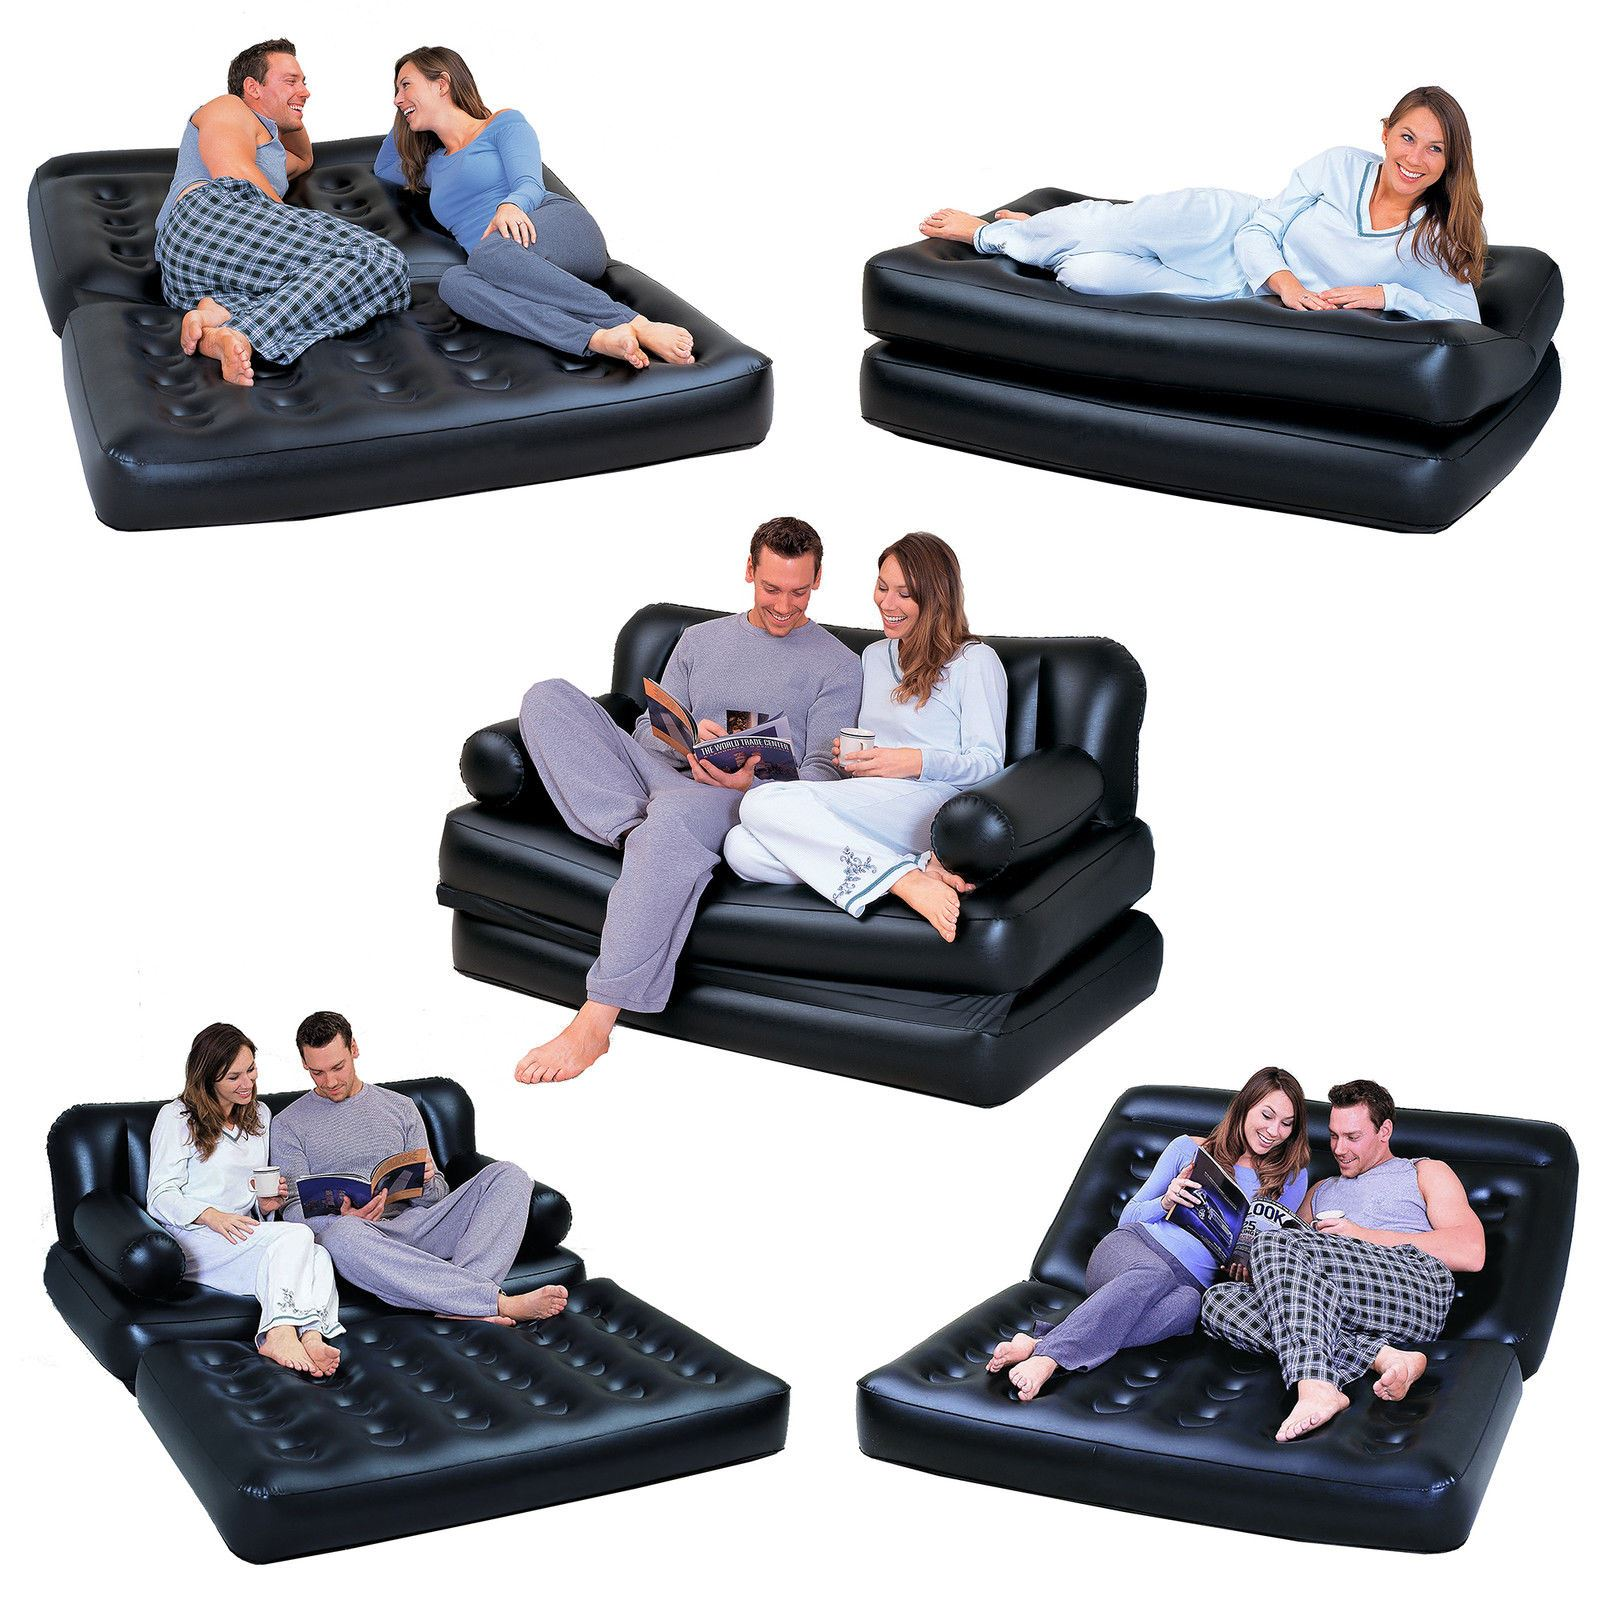 sofa bed bestway 5 in 1 how to patch a tear leather new double black inflatable air chair couch